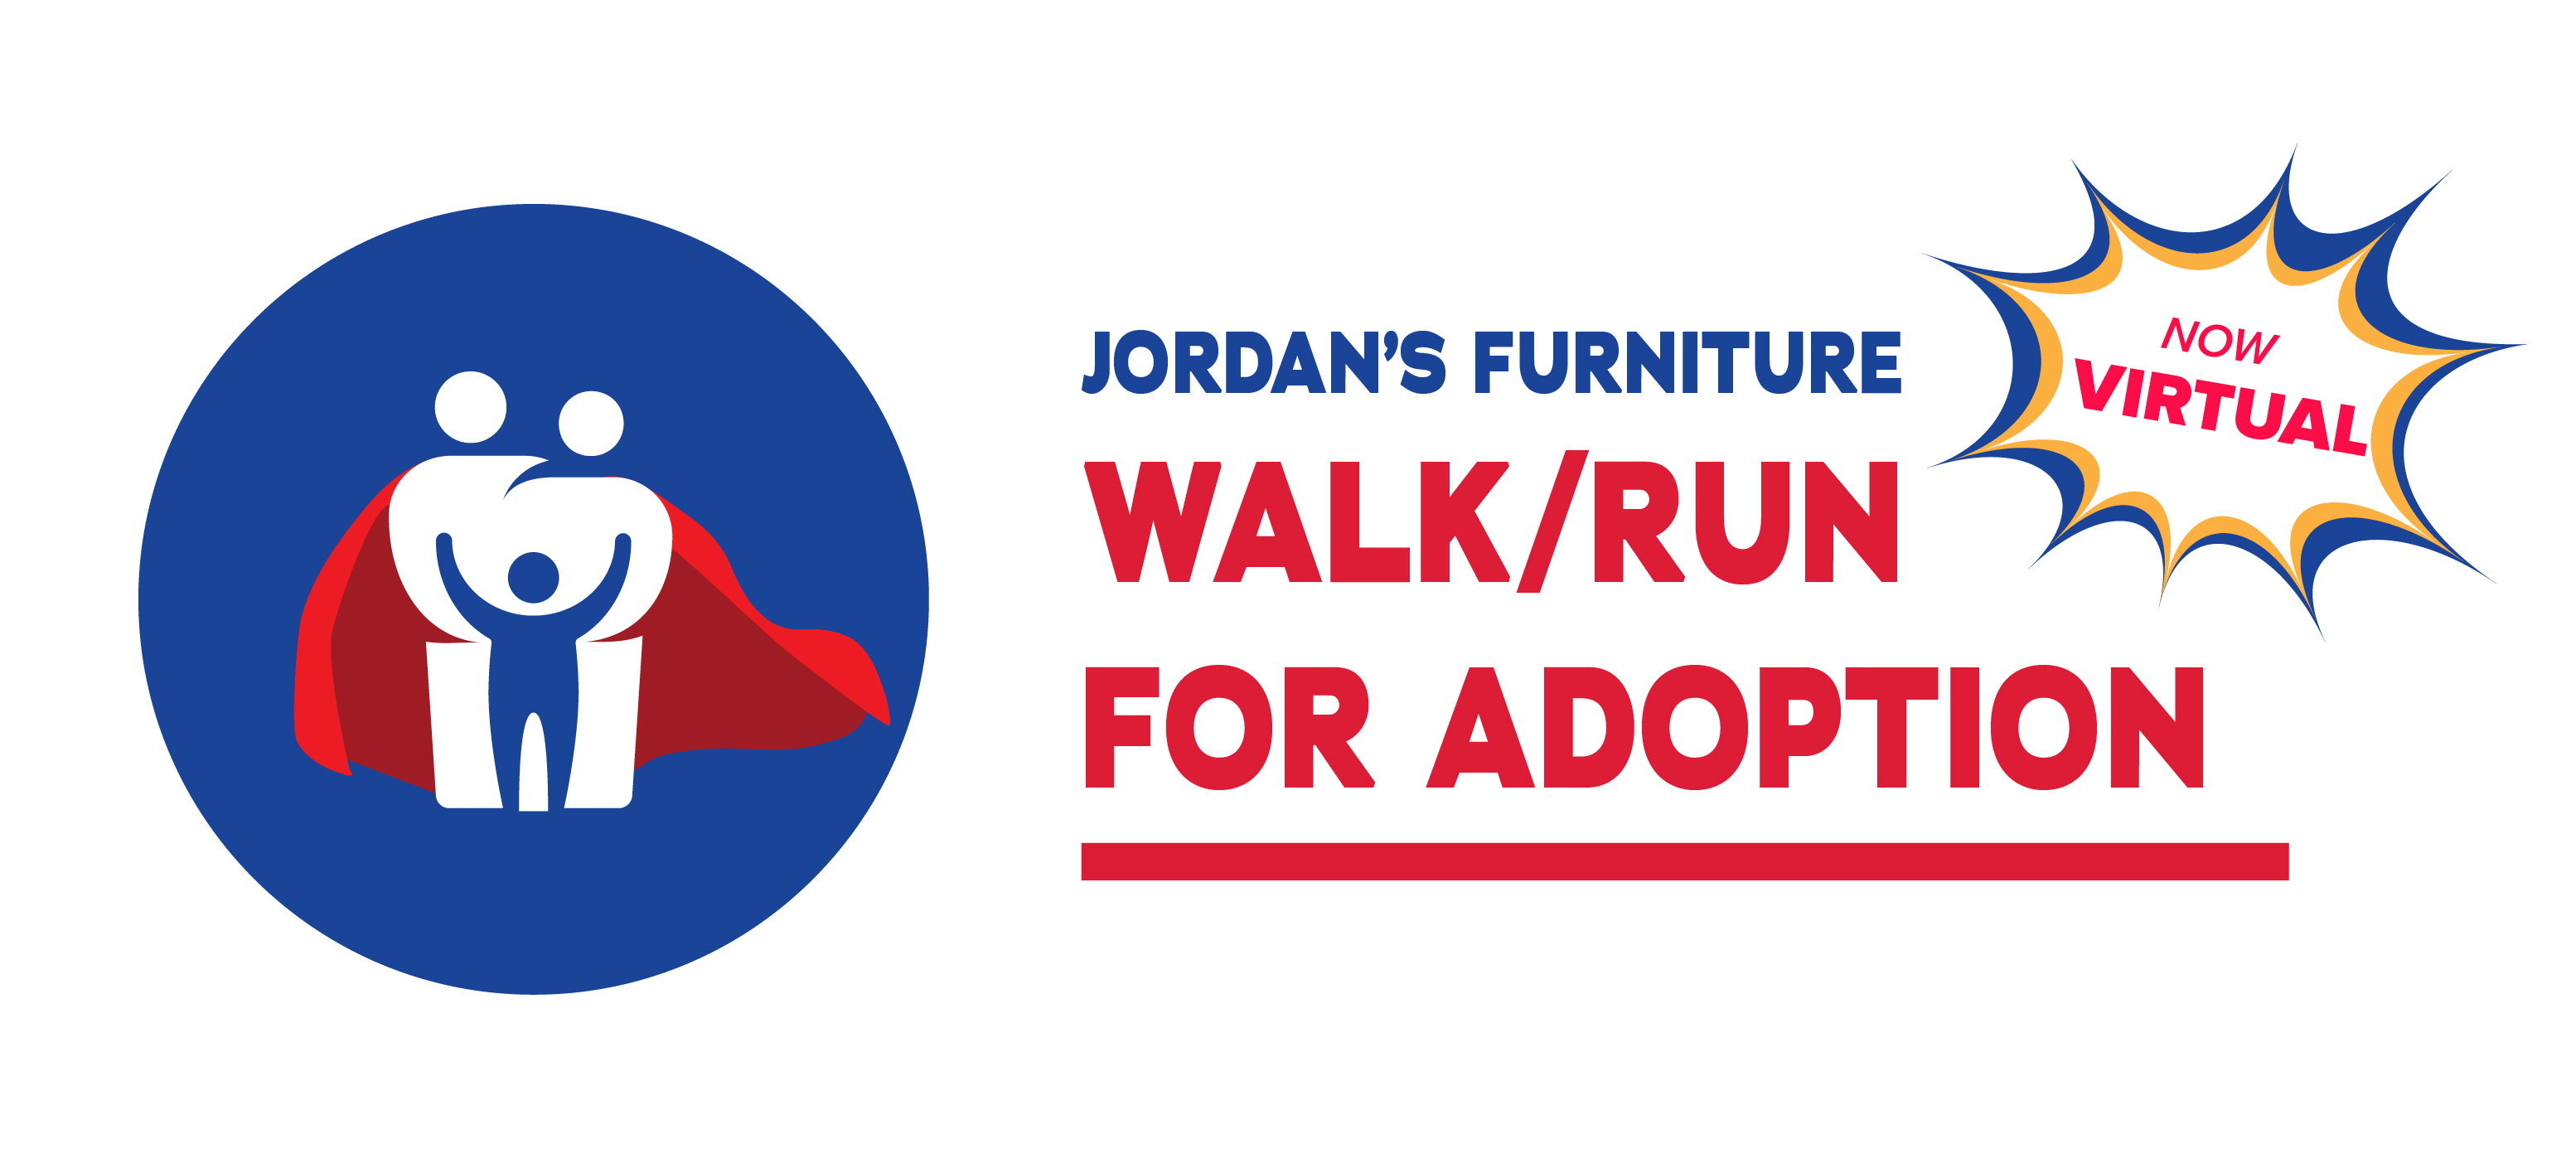 Jordan's Furniture 2020 Virtual Walk Run for Adoption